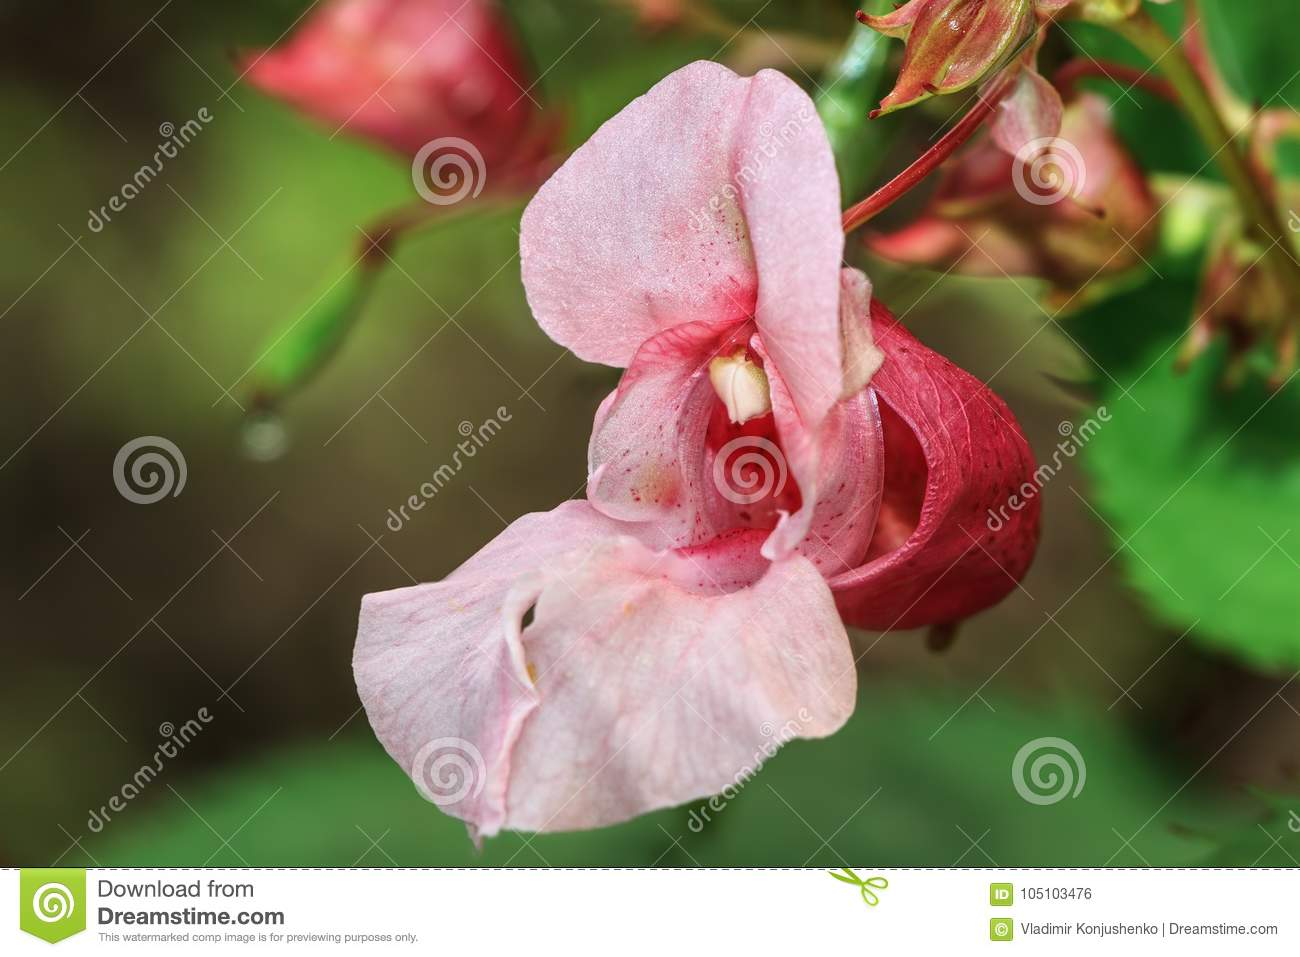 Snapdragon stock photo. Image of plant, gardening, background ...